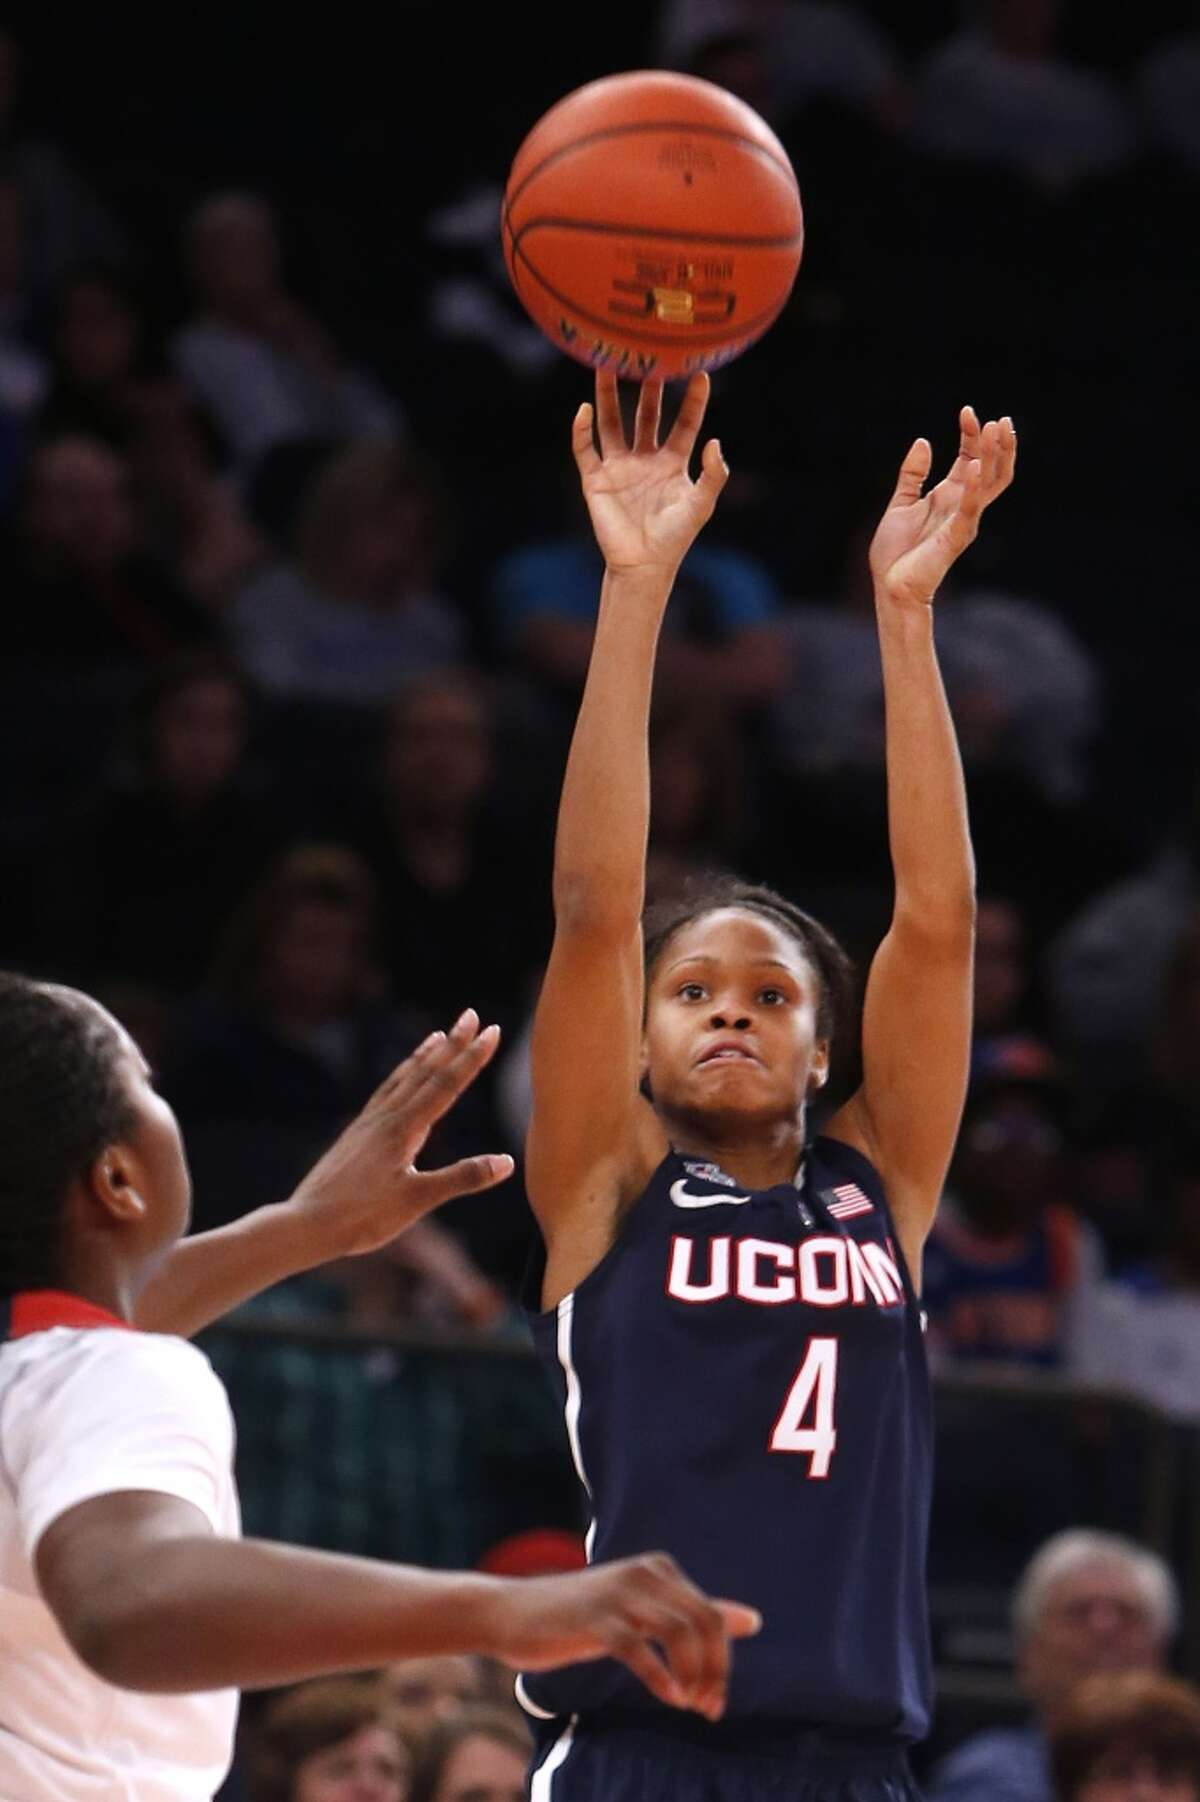 Connecticut's Moriah Jefferson (4) shoots against St. John's during the second half of an NCAA college basketball game, Sunday, Jan. 4, 2015, in New York. Connecticut defeated St. John's 70-54. (AP Photo/Jason DeCrow)